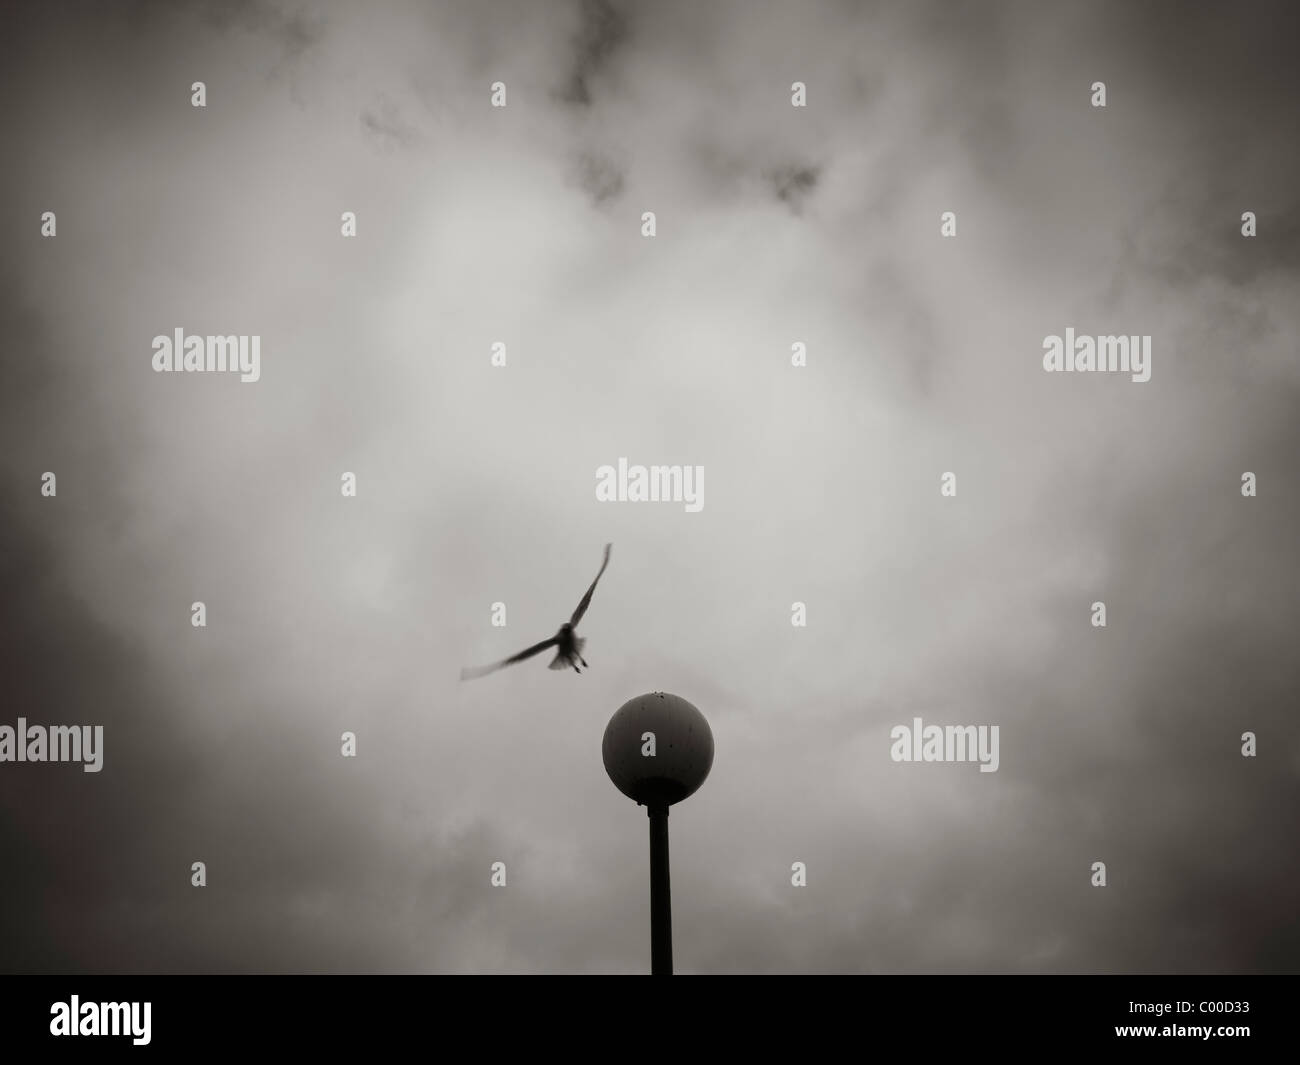 Seagull landing on lampost, Salford Quays, Manchester, with moody sky in black and white - Stock Image